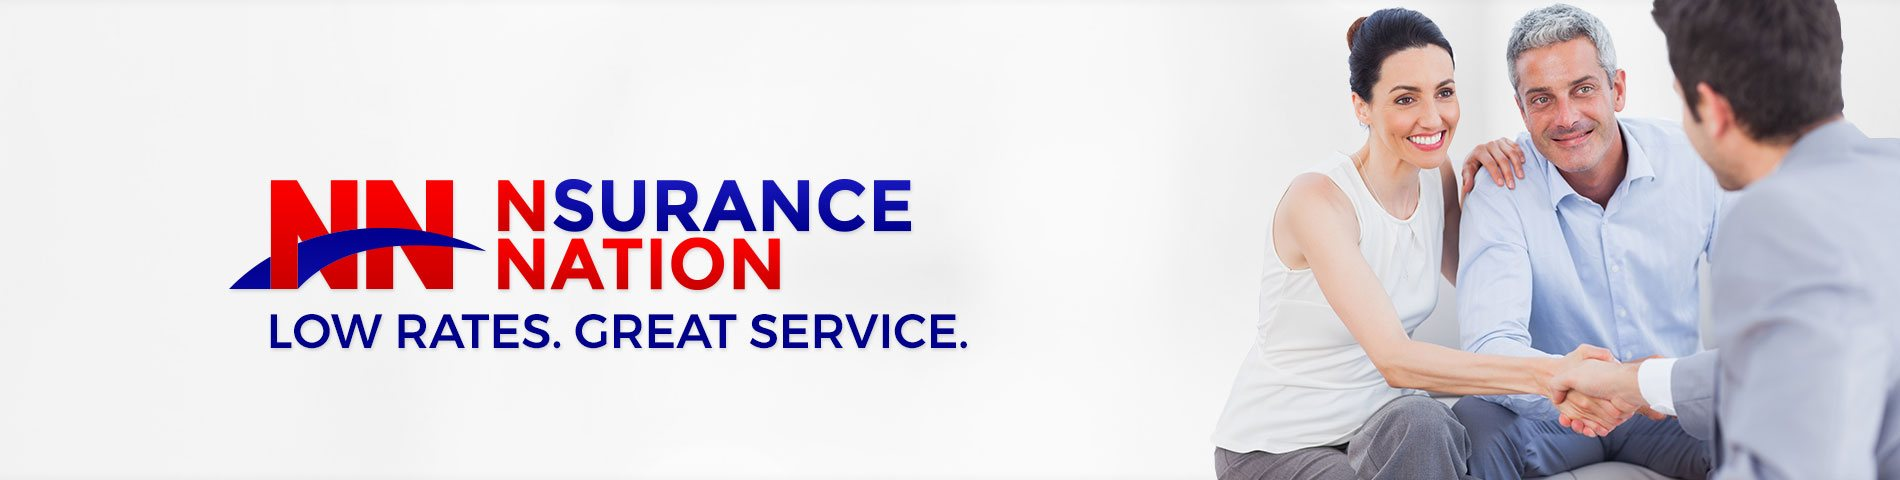 Why Nsurance Nation?